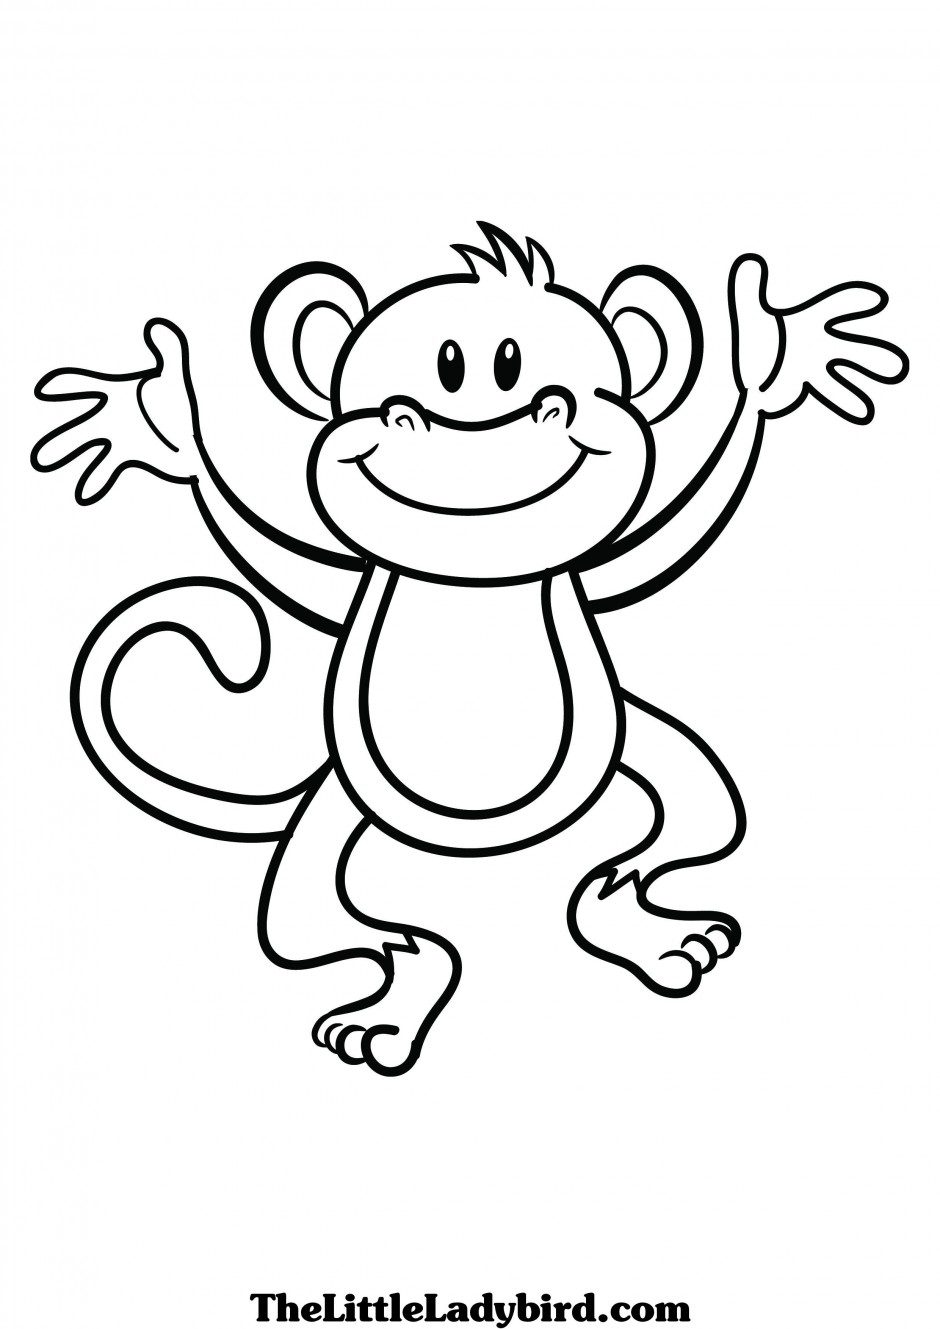 Black and white clipart monkey png royalty free Monkey black and white monkey clip art black and white free clipart ... png royalty free